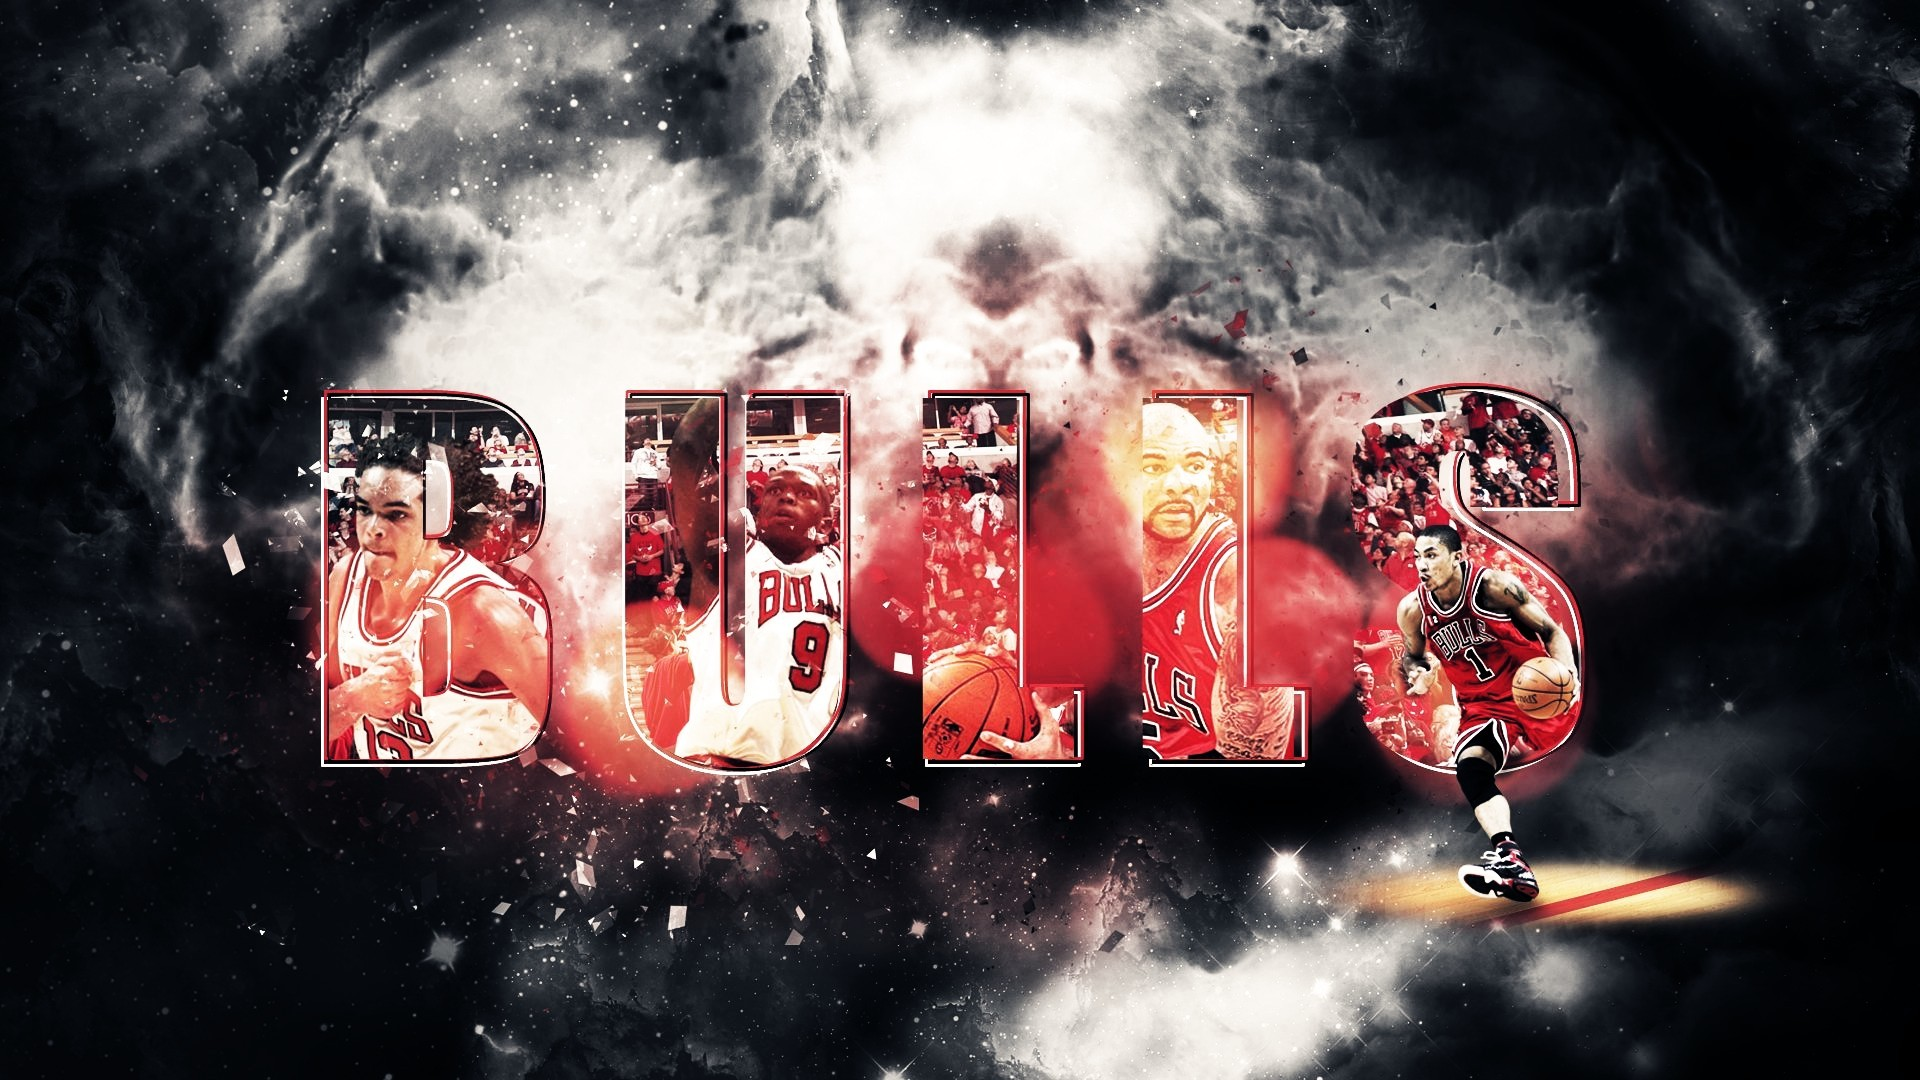 1920x1080 Chicago Bulls Wallpapers HD Wallpaper × Chicago Bulls | HD Wallpapers |  Pinterest | Bulls wallpaper, Chicago bulls and Chicago